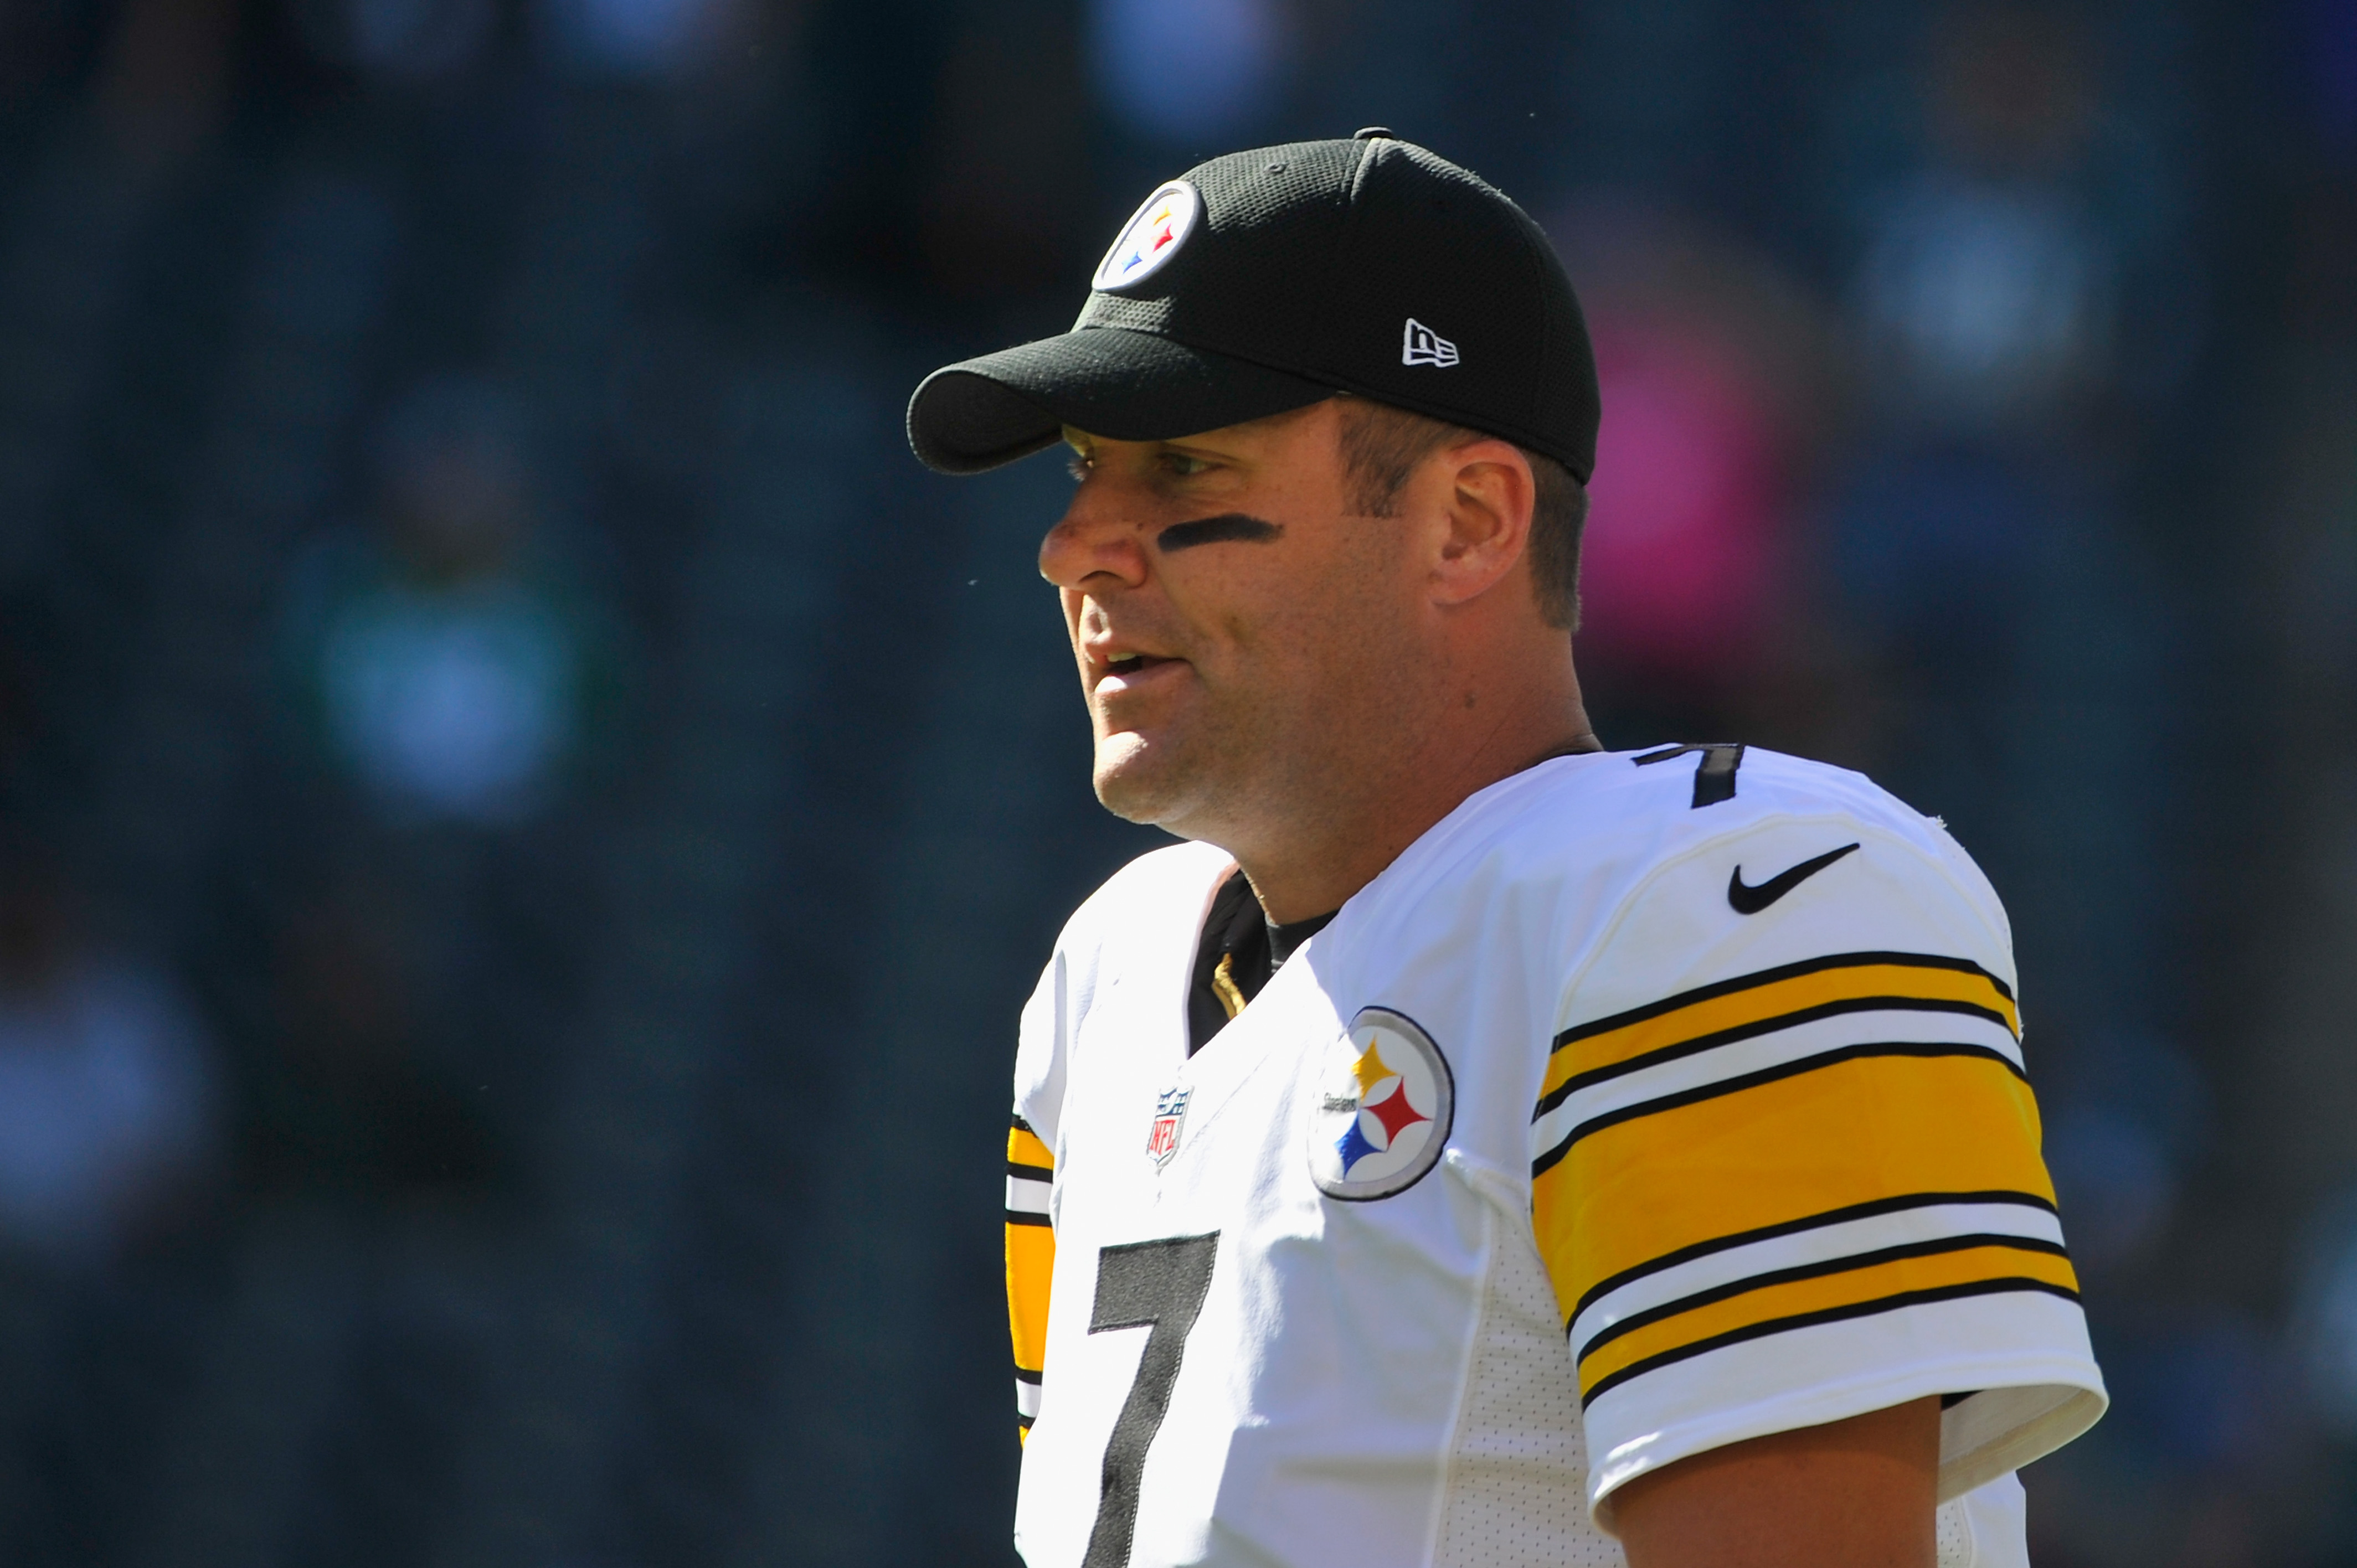 Roethlisberger injury, Roethlisberger hurt, Roethlisberger injury updates, Roethlisberger injury status